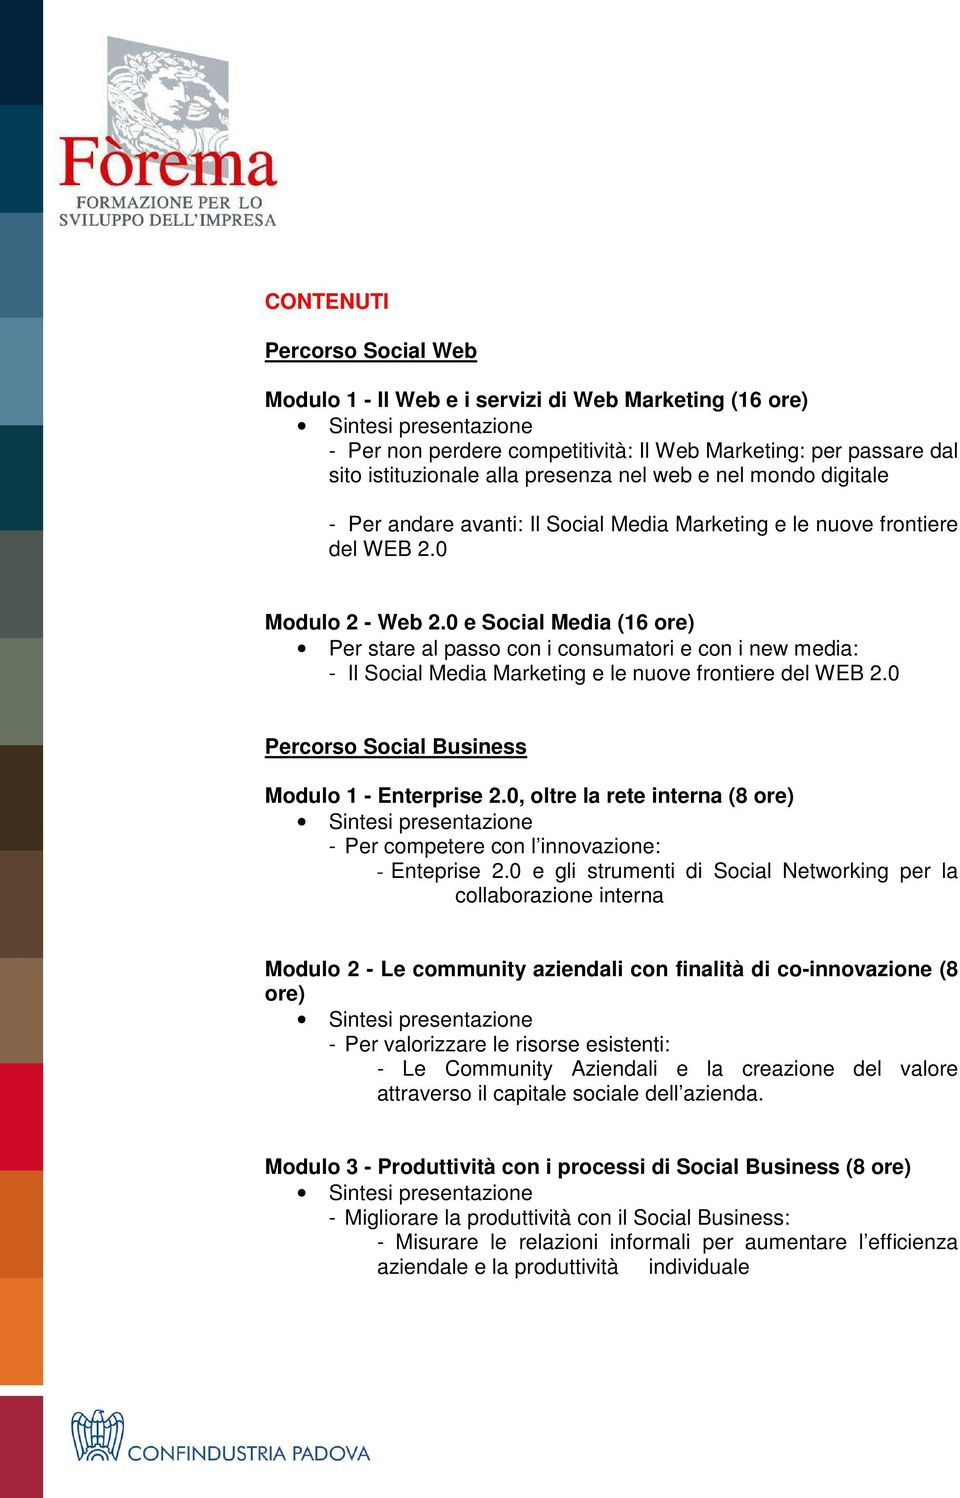 0 e Social Media (16 ore) Per stare al passo con i consumatori e con i new media: - Il Social Media Marketing e le nuove frontiere del WEB 2.0 Percorso Social Business Modulo 1 - Enterprise 2.